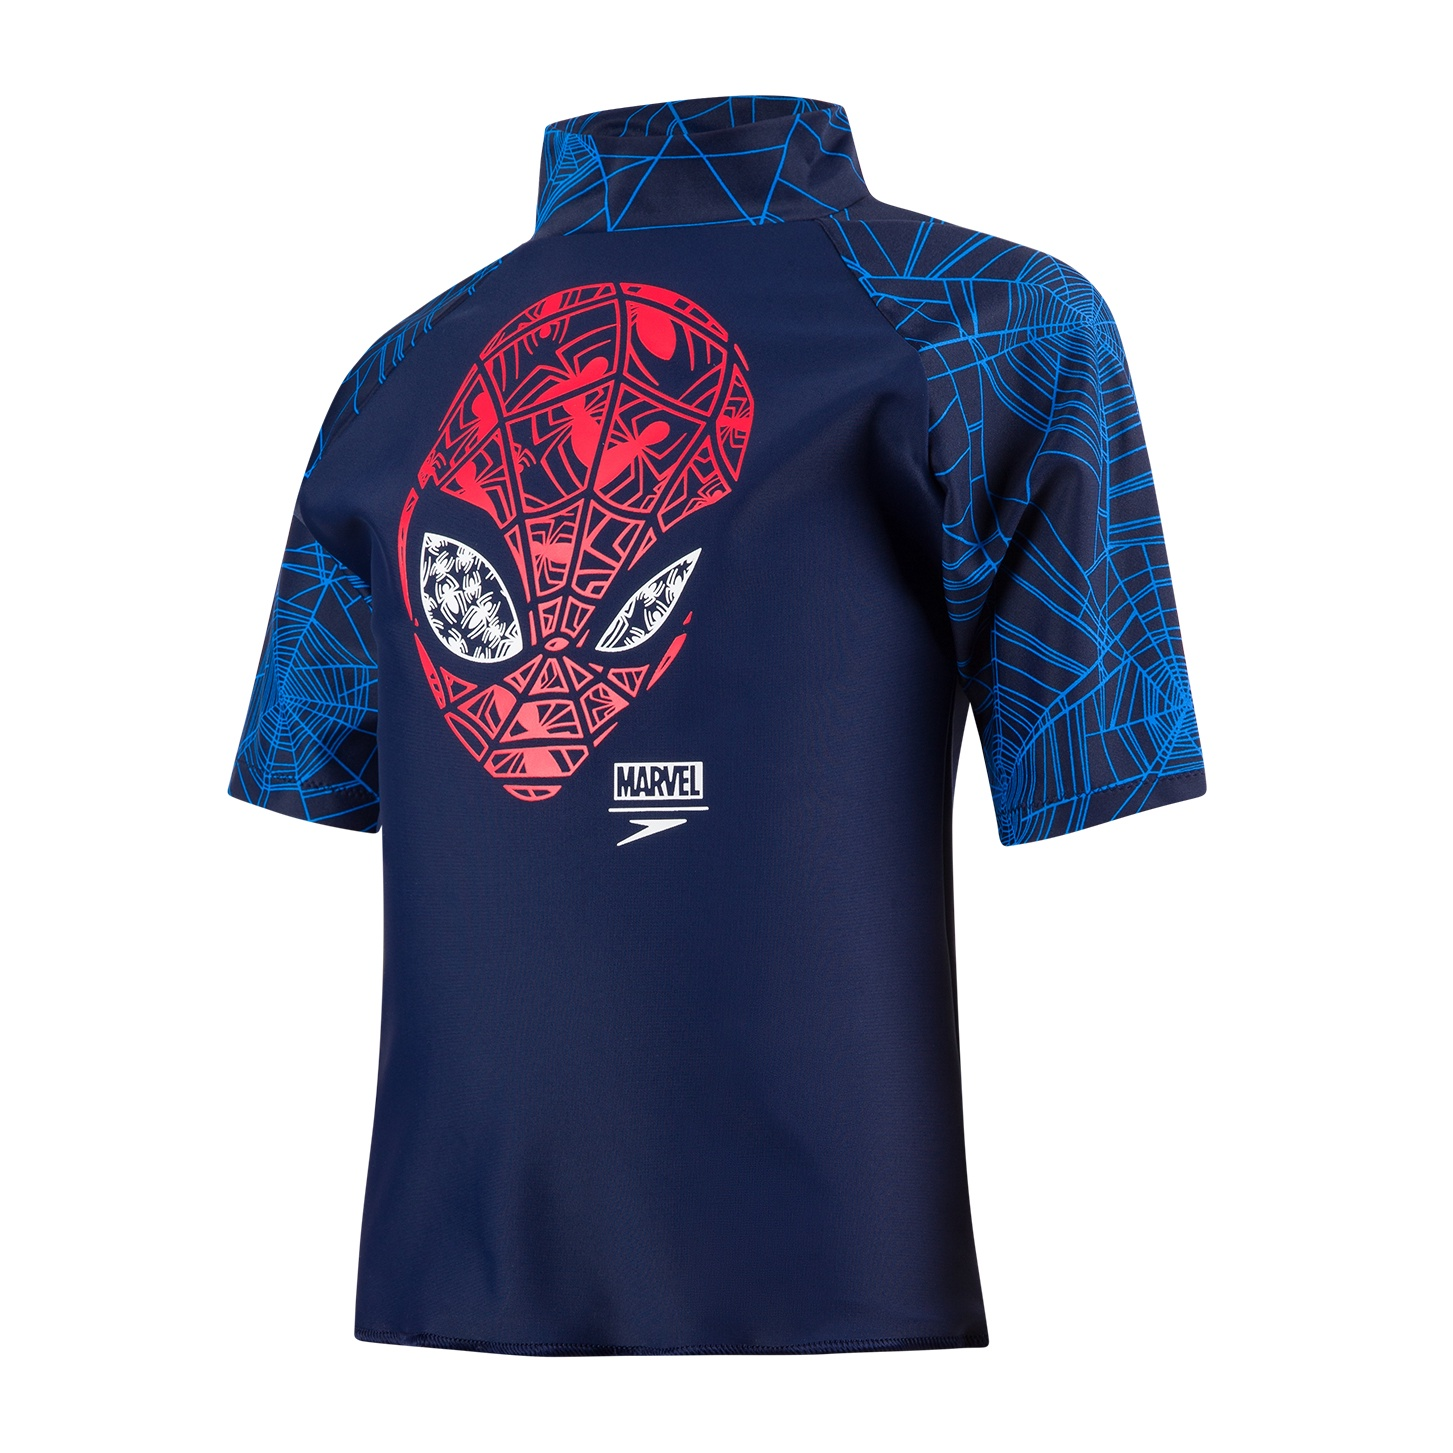 Toddler Boys Marvel Spiderman Sun Top